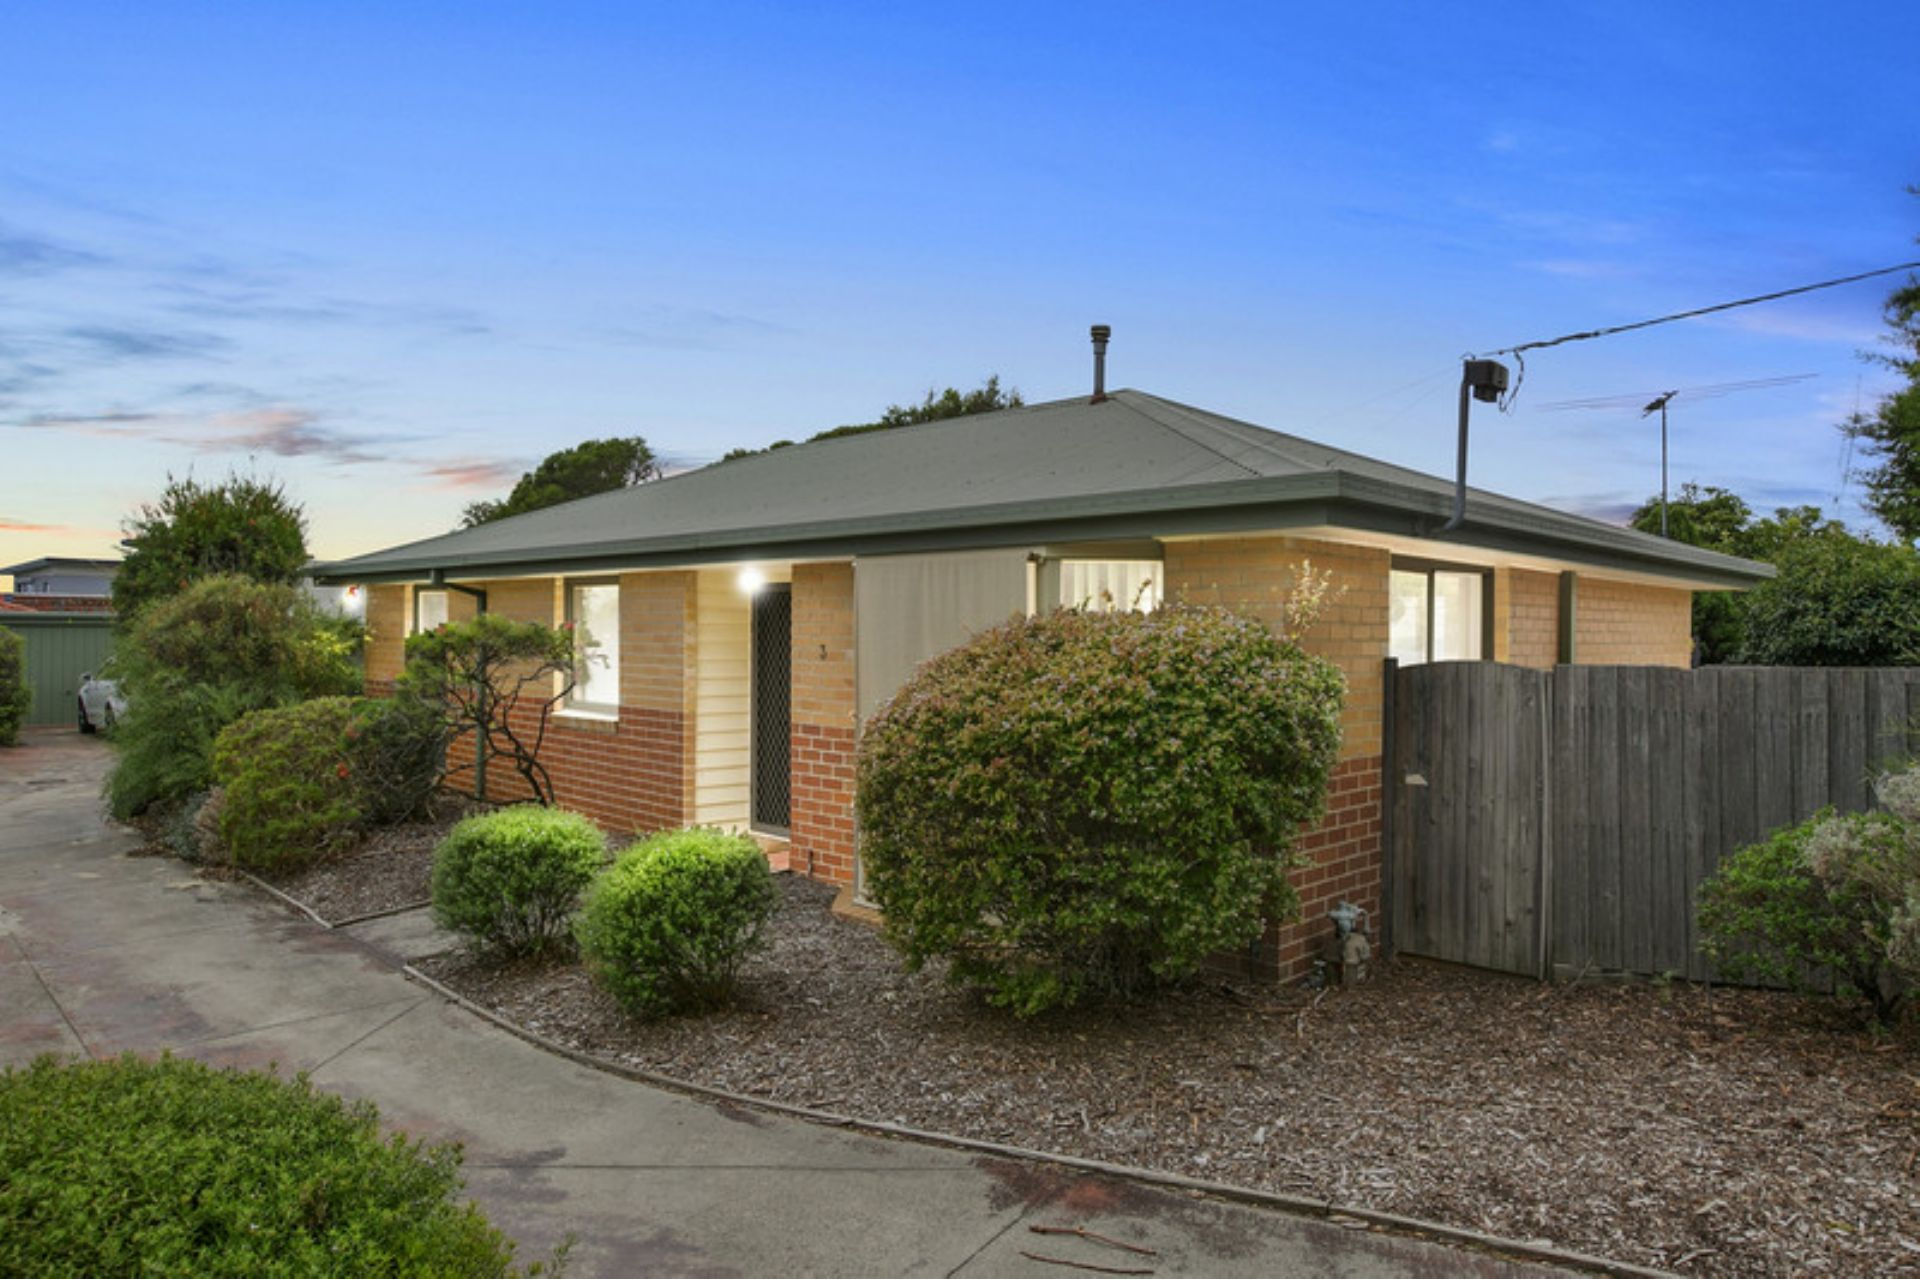 3/29 Fulton Avenue, MORNINGTON, VIC, 3931 - Image